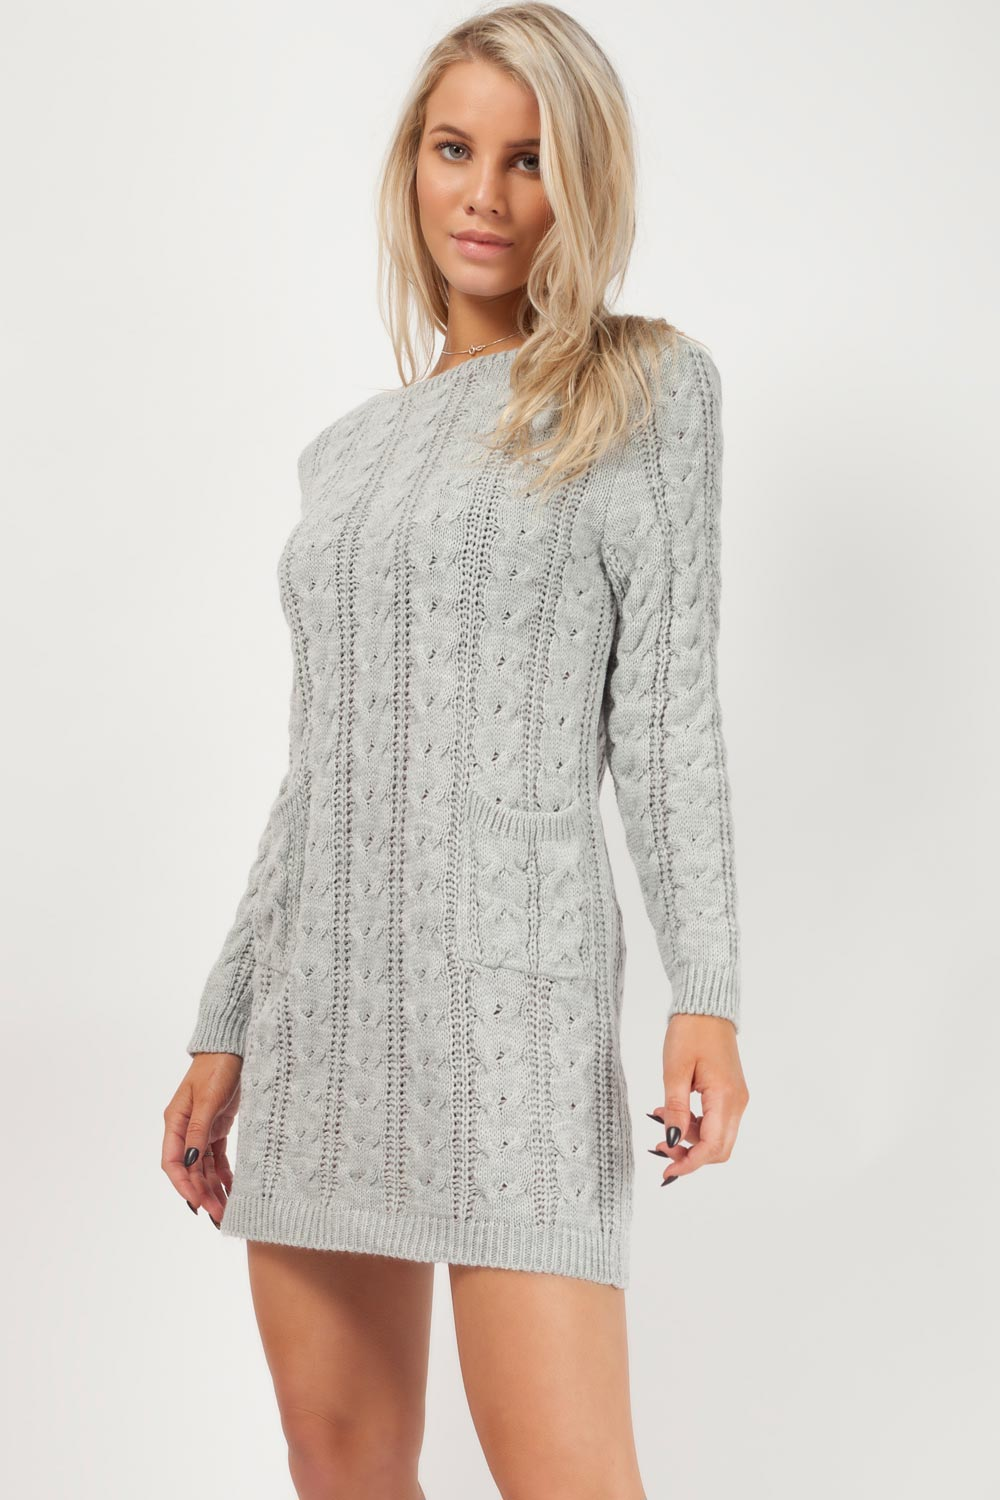 grey casual dress with sleeves knitted